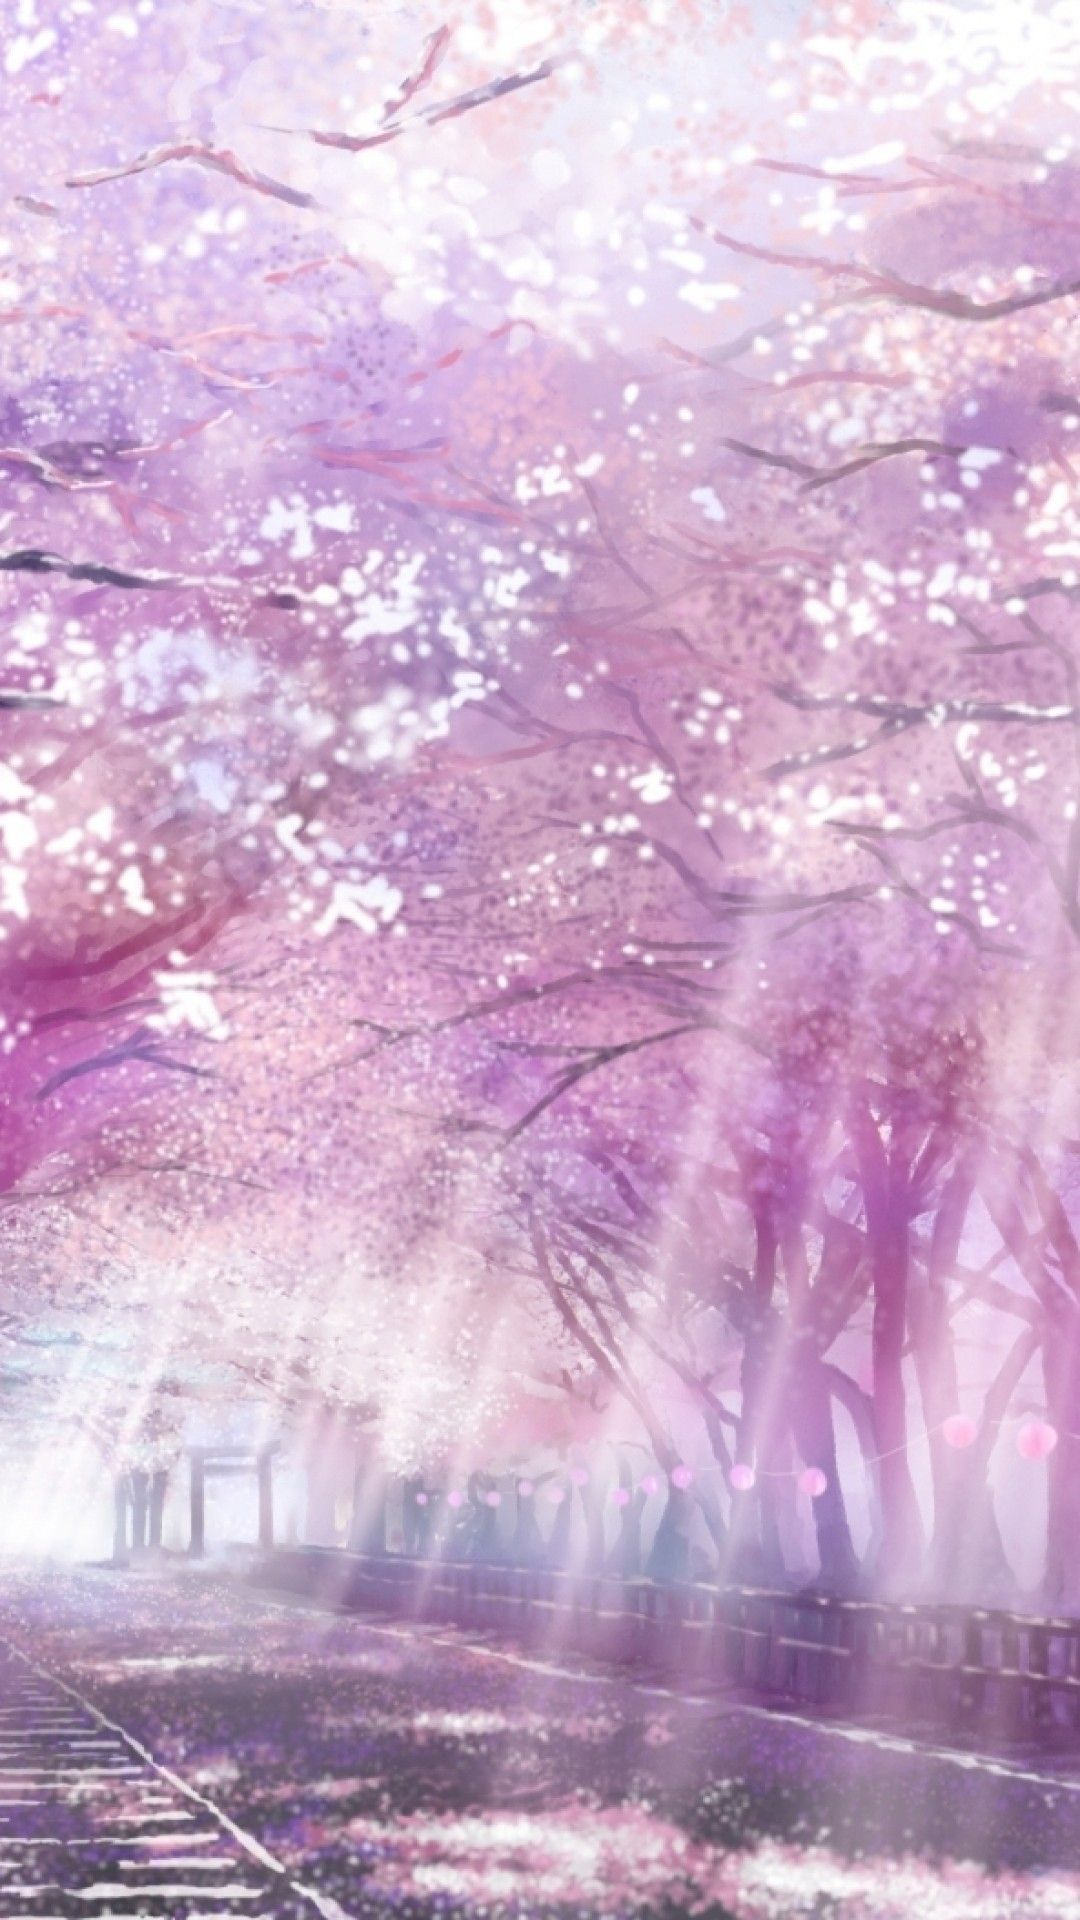 Cherry Blossoms Anime Scenery Wallpapers Top Free Cherry